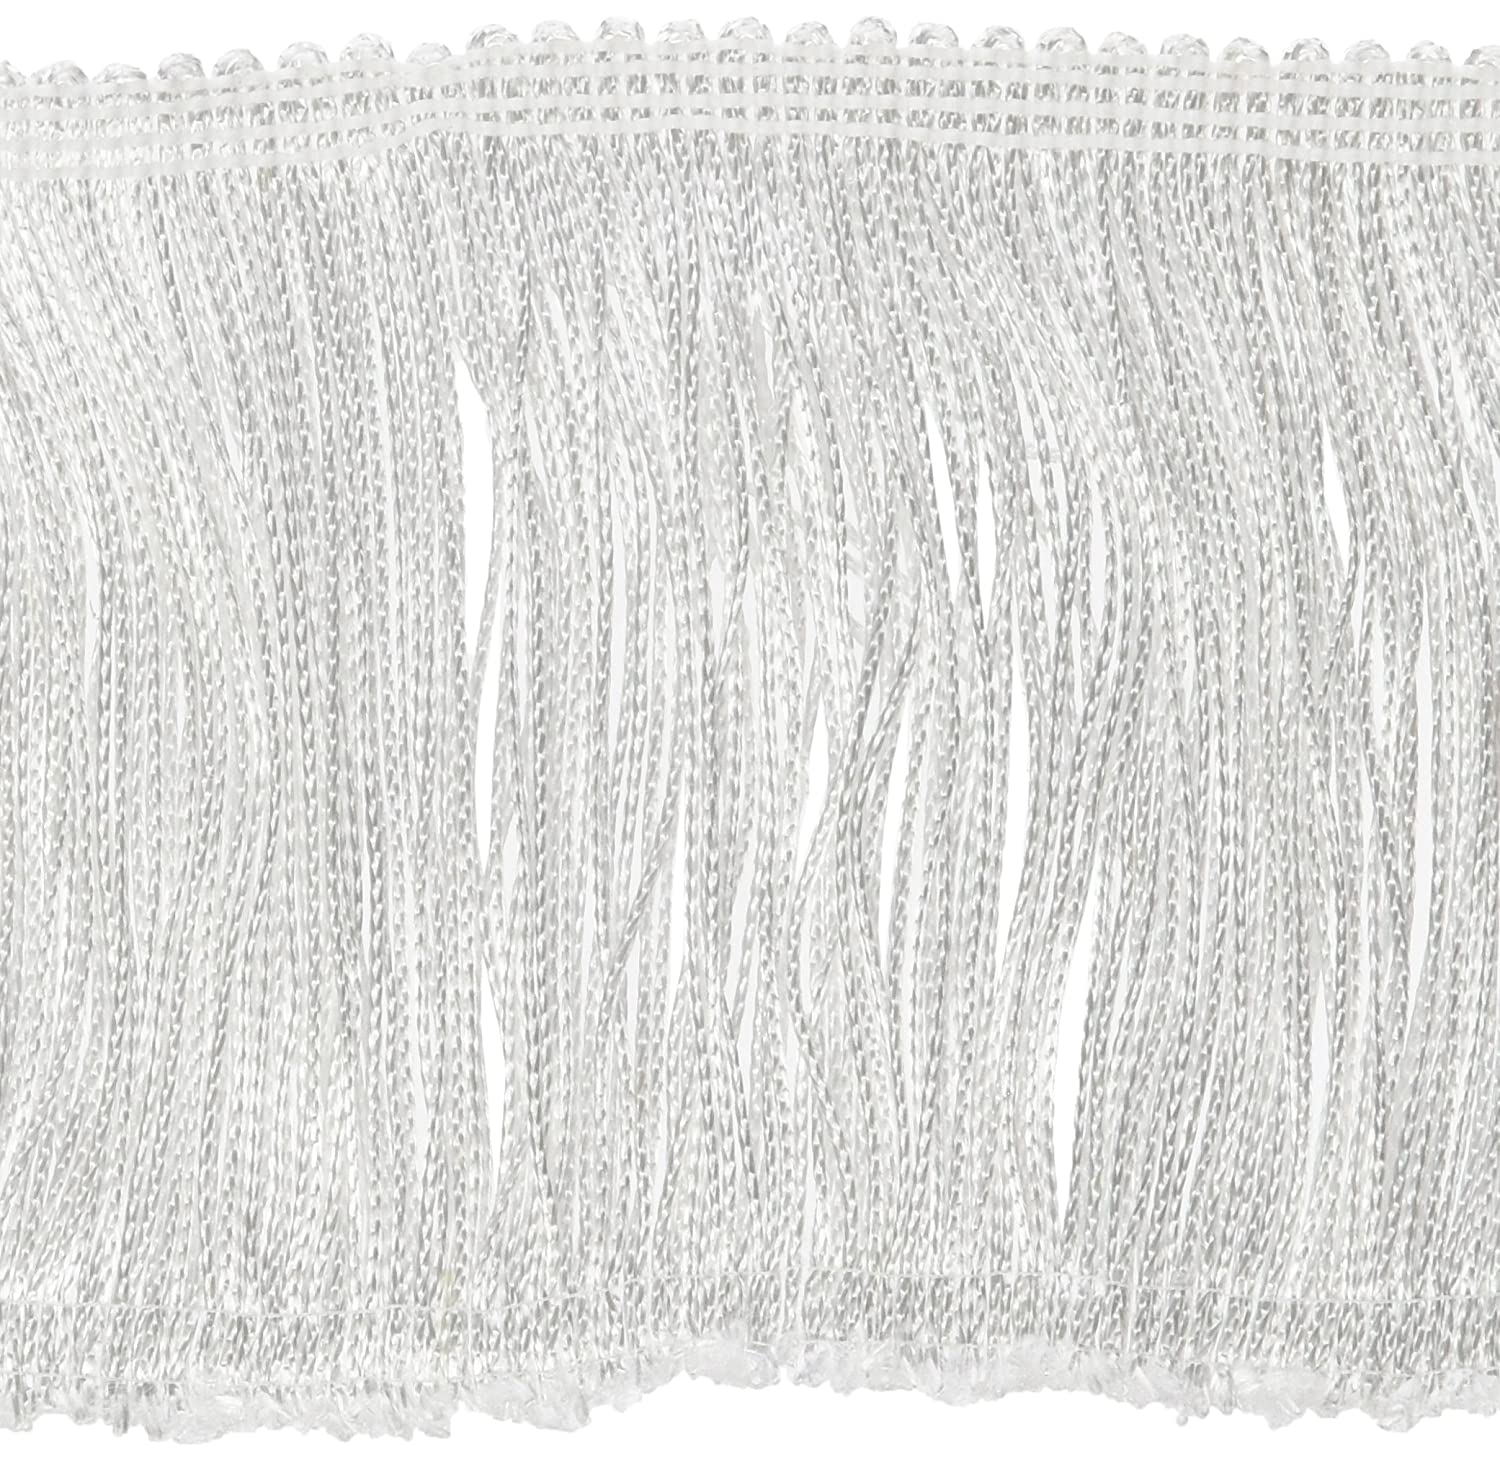 56a0d3d00156 ... Coral Medium Wright Products DMC 5214-350 Six Strand Embroidery Cotton  100 Gram Cone